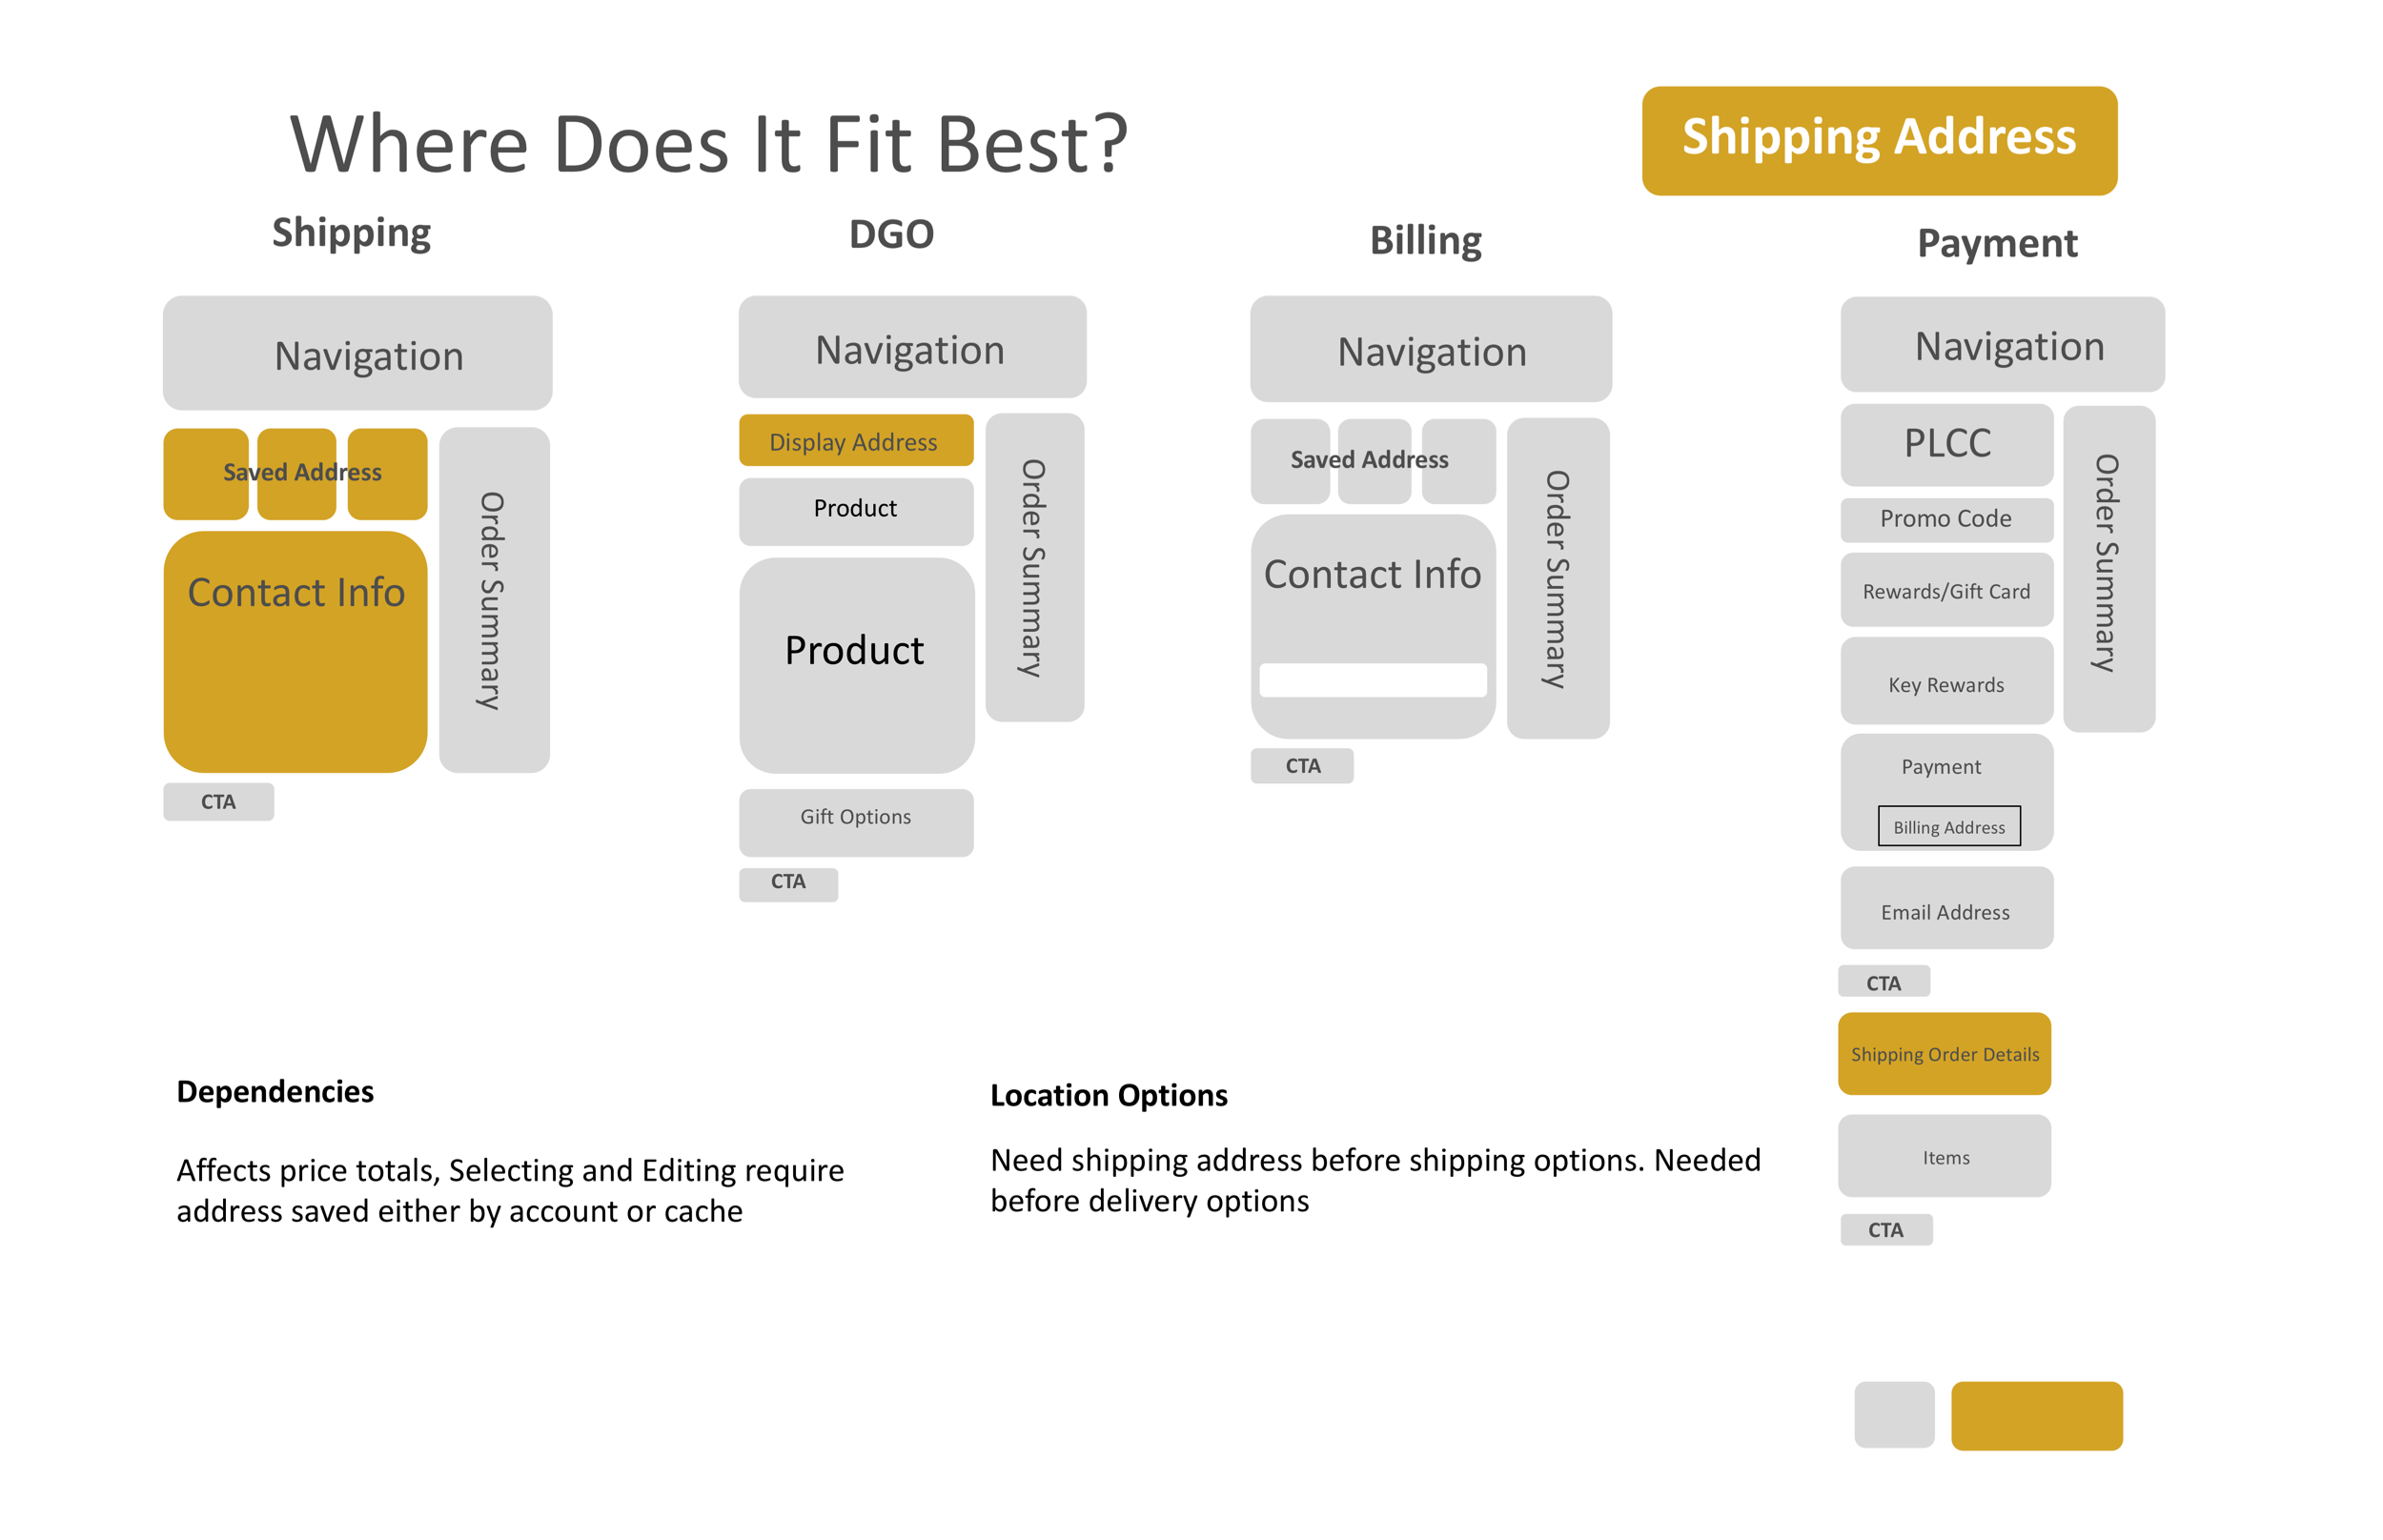 Where does it fit best? - Shipping